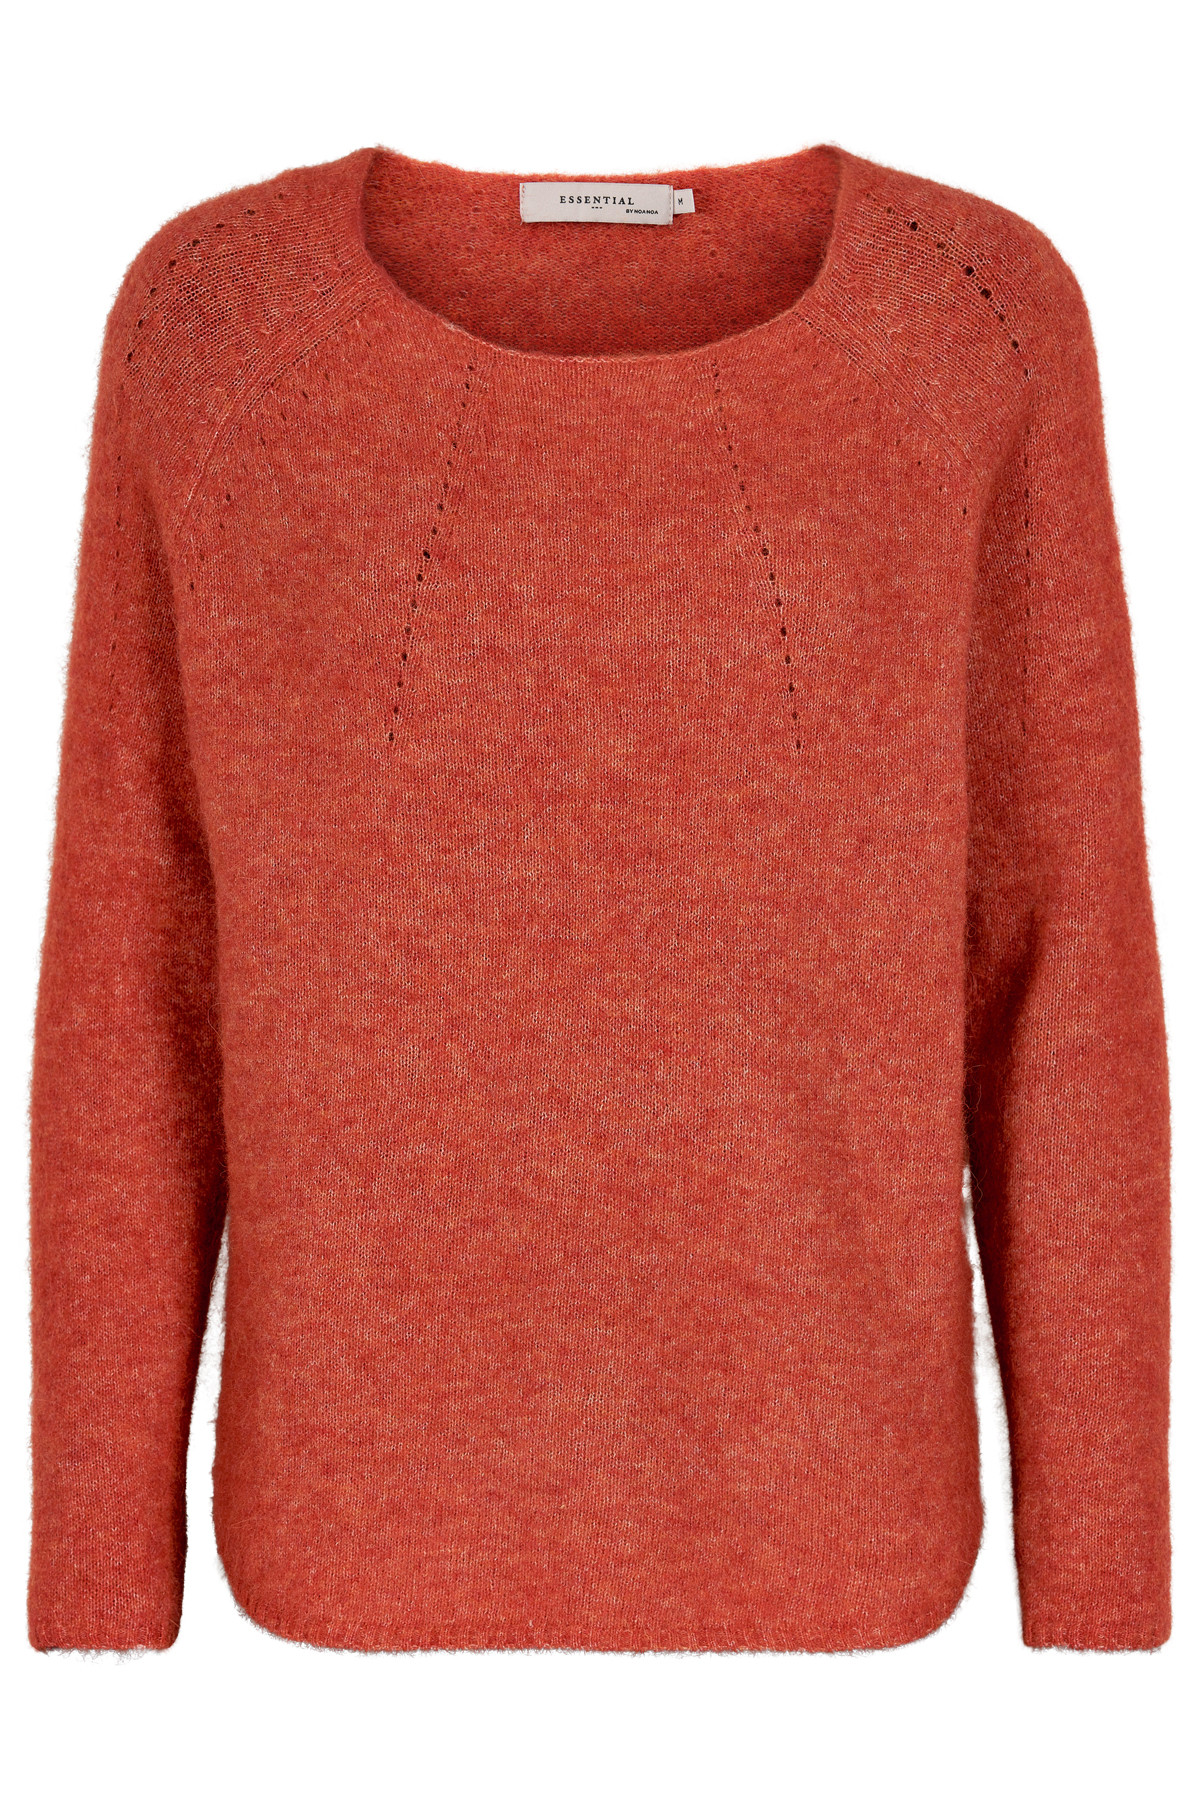 Image of   NOA NOA PULLOVER 1-8999-2 01068 (Red, S)